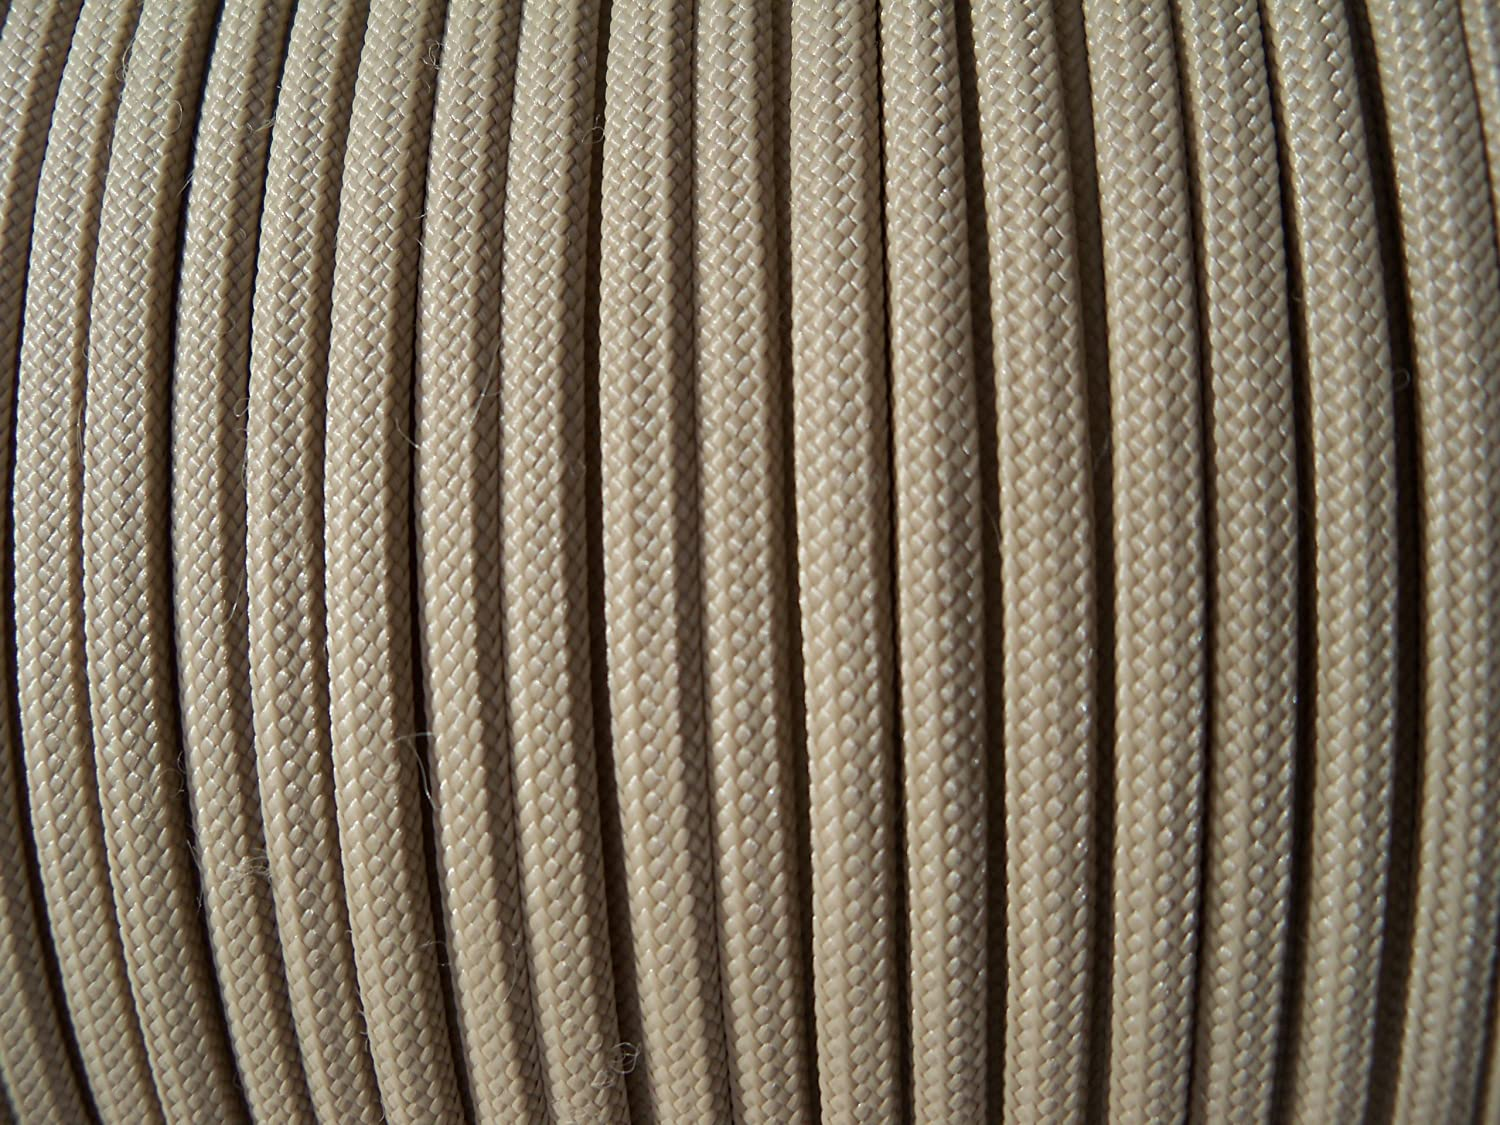 16 Feet of Parachute Cord generic Desert Sand Paracord Craft Cord 16ft